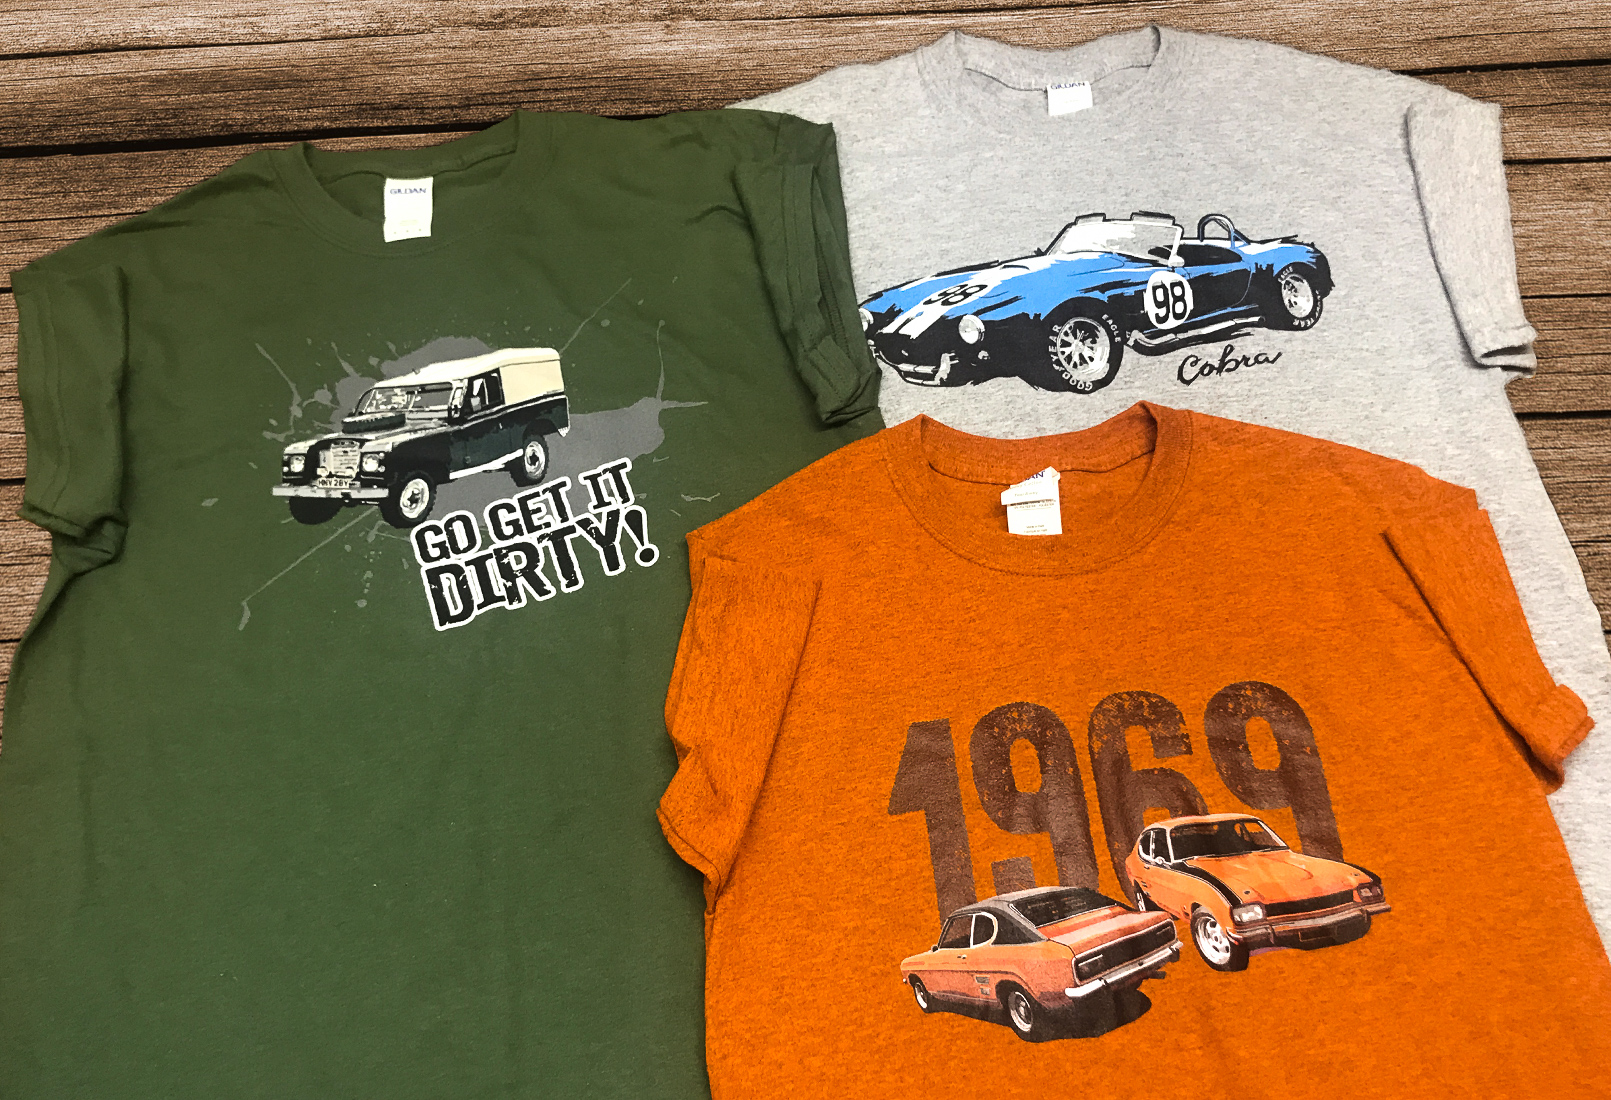 The Cotswold Motoring Museum tees